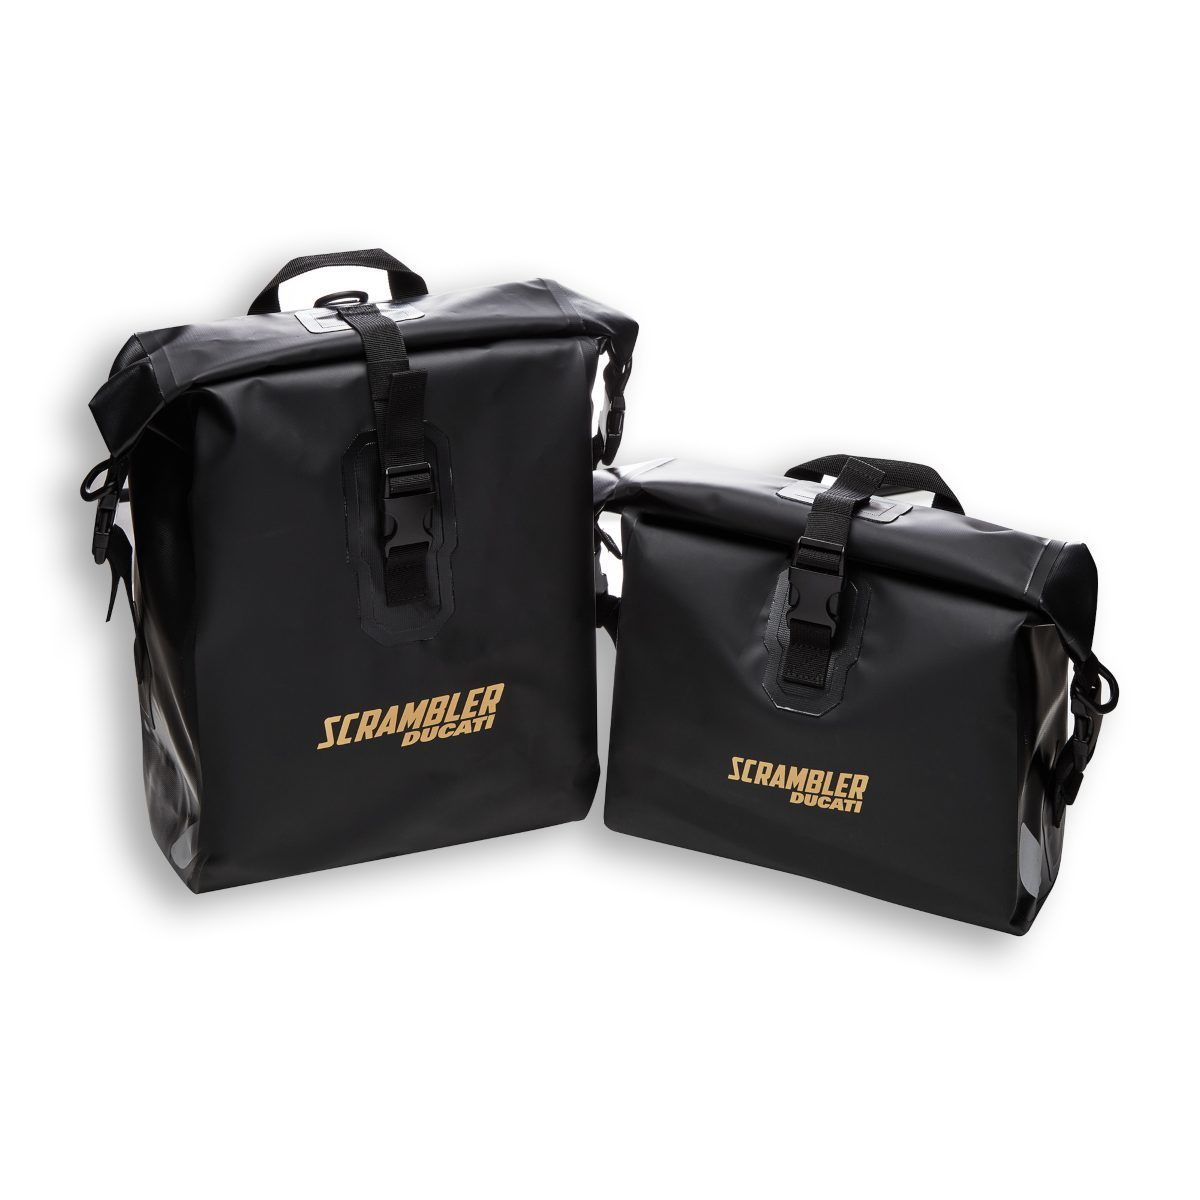 Ducati Scrambler Accessories – Waterproof side panniers (1)